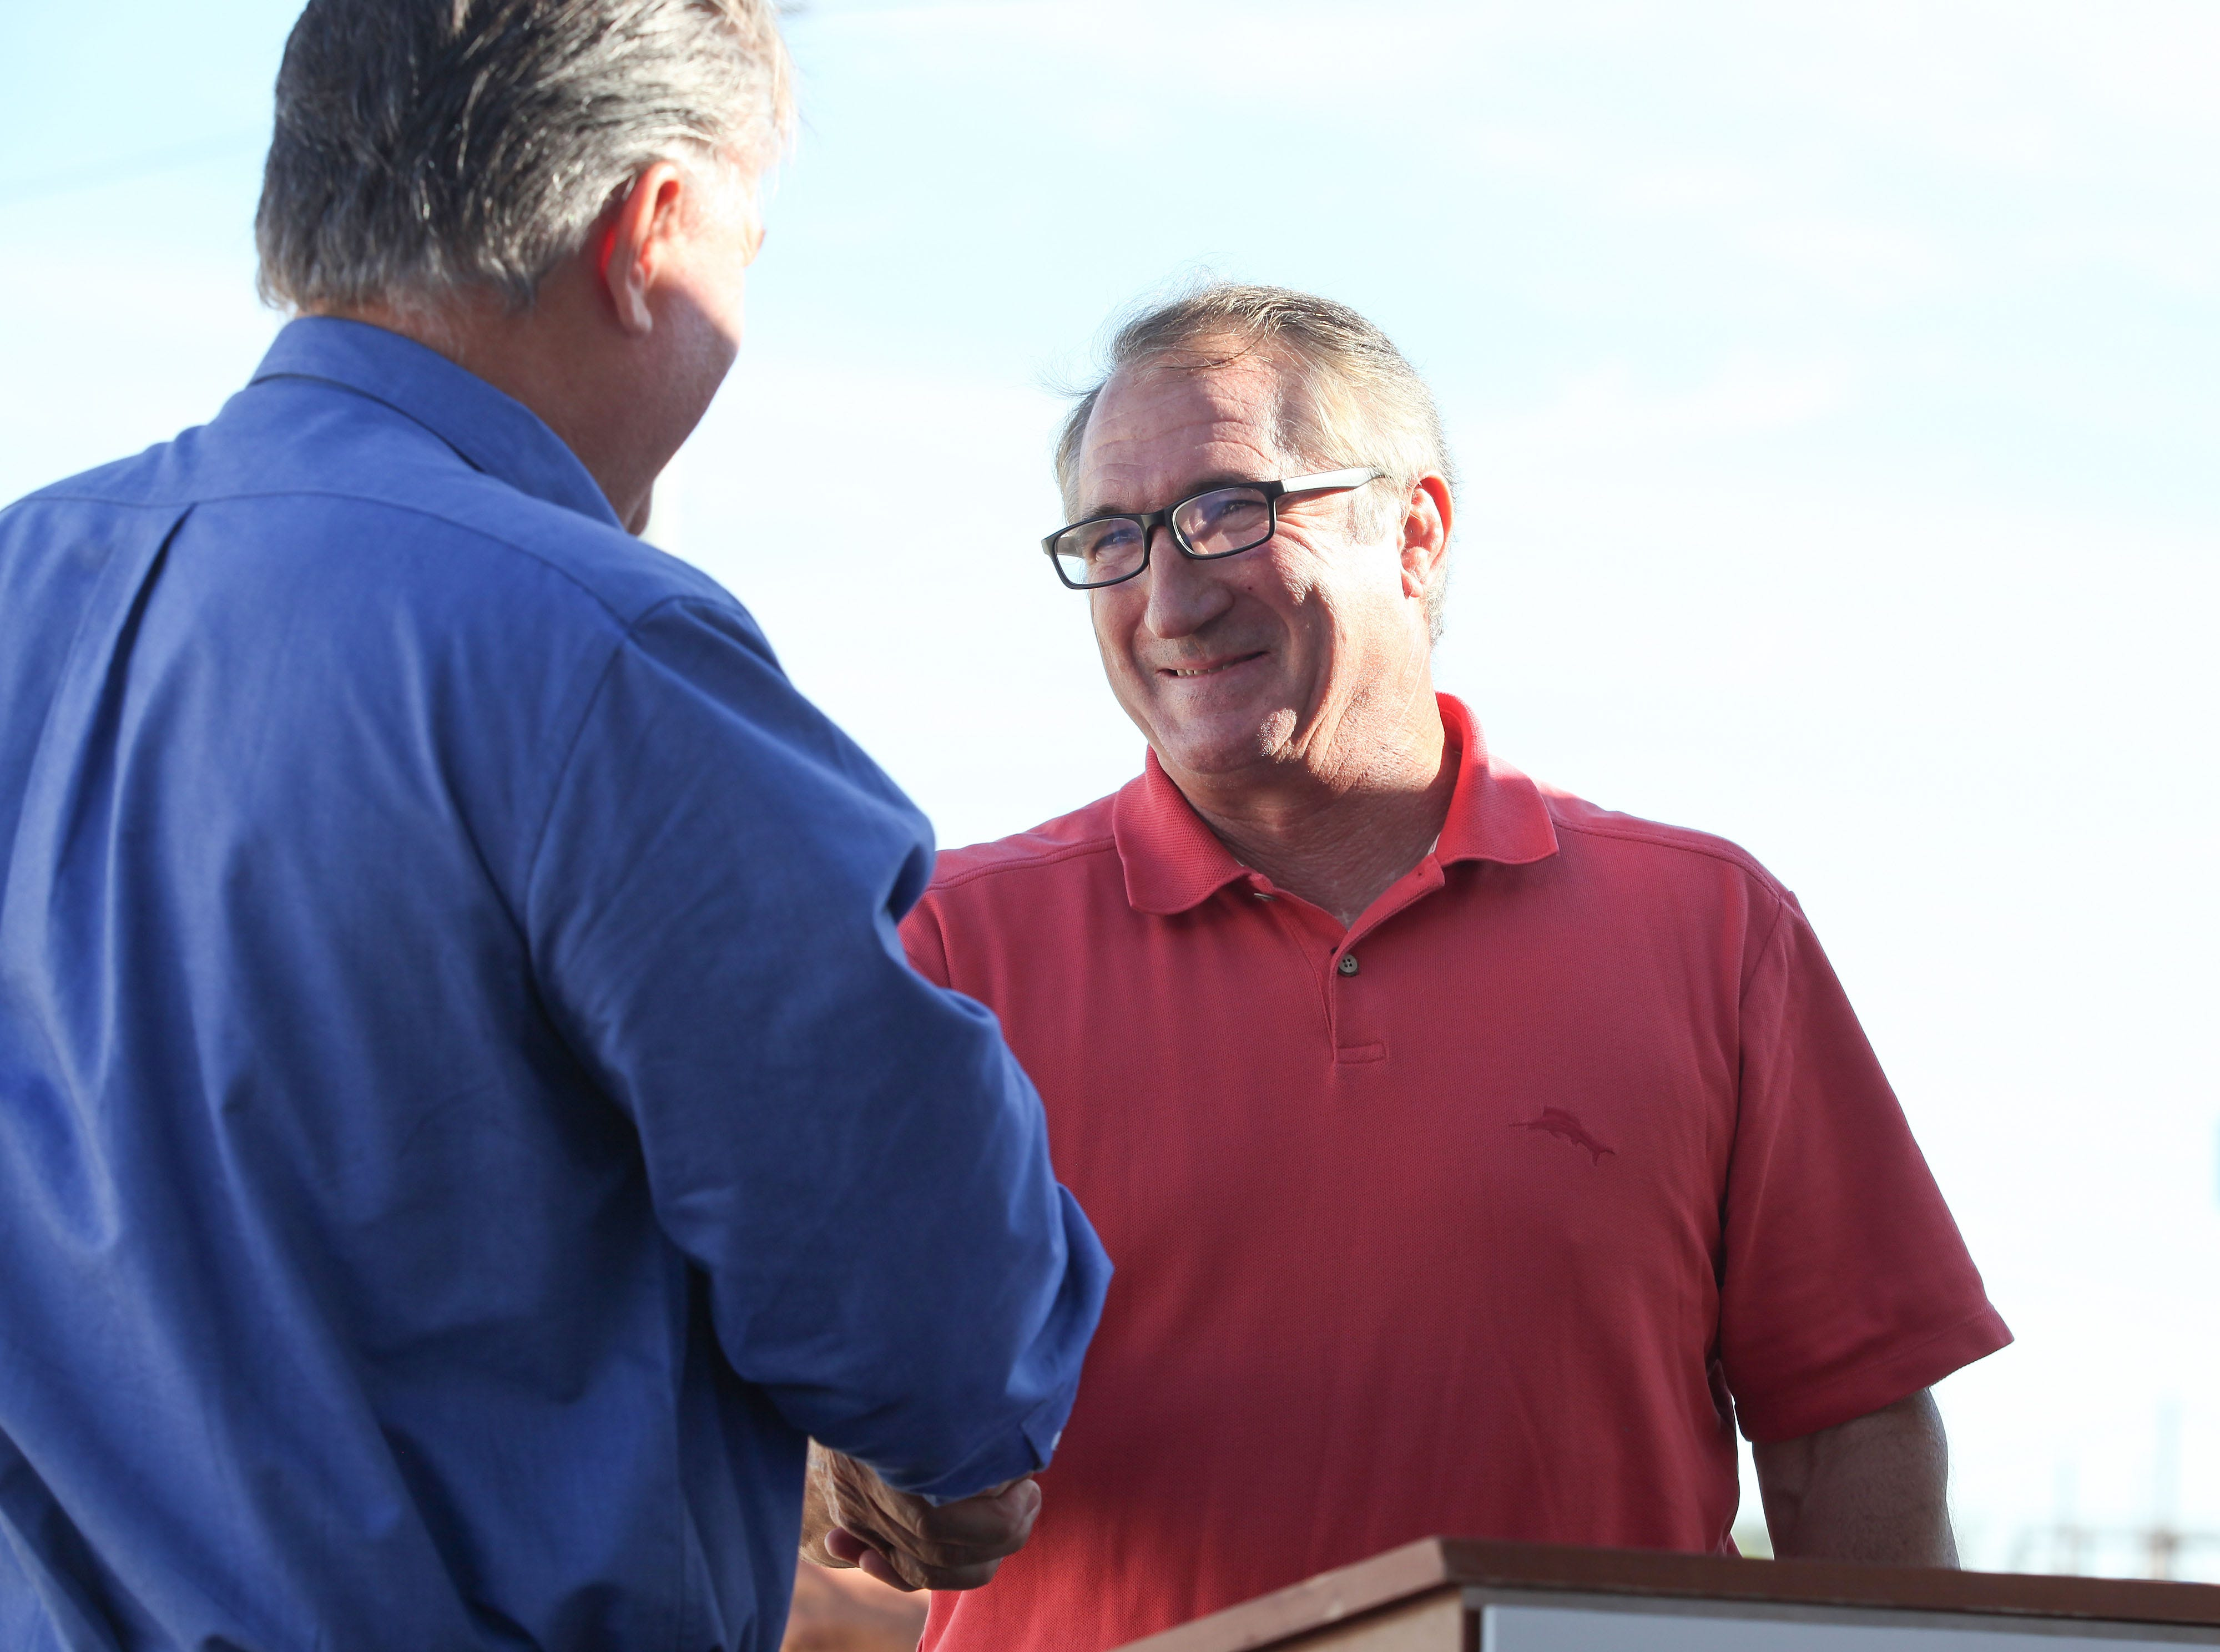 Then-Imperial Irrigation District board member Matt Dessert, left, greets his longtime friend Mike Abatti, a former IID board member and president of Coachella Energy Storage Partners, at an event celebrating the opening of IID's battery storage system in El Centro, California, on Oct. 26, 2016.